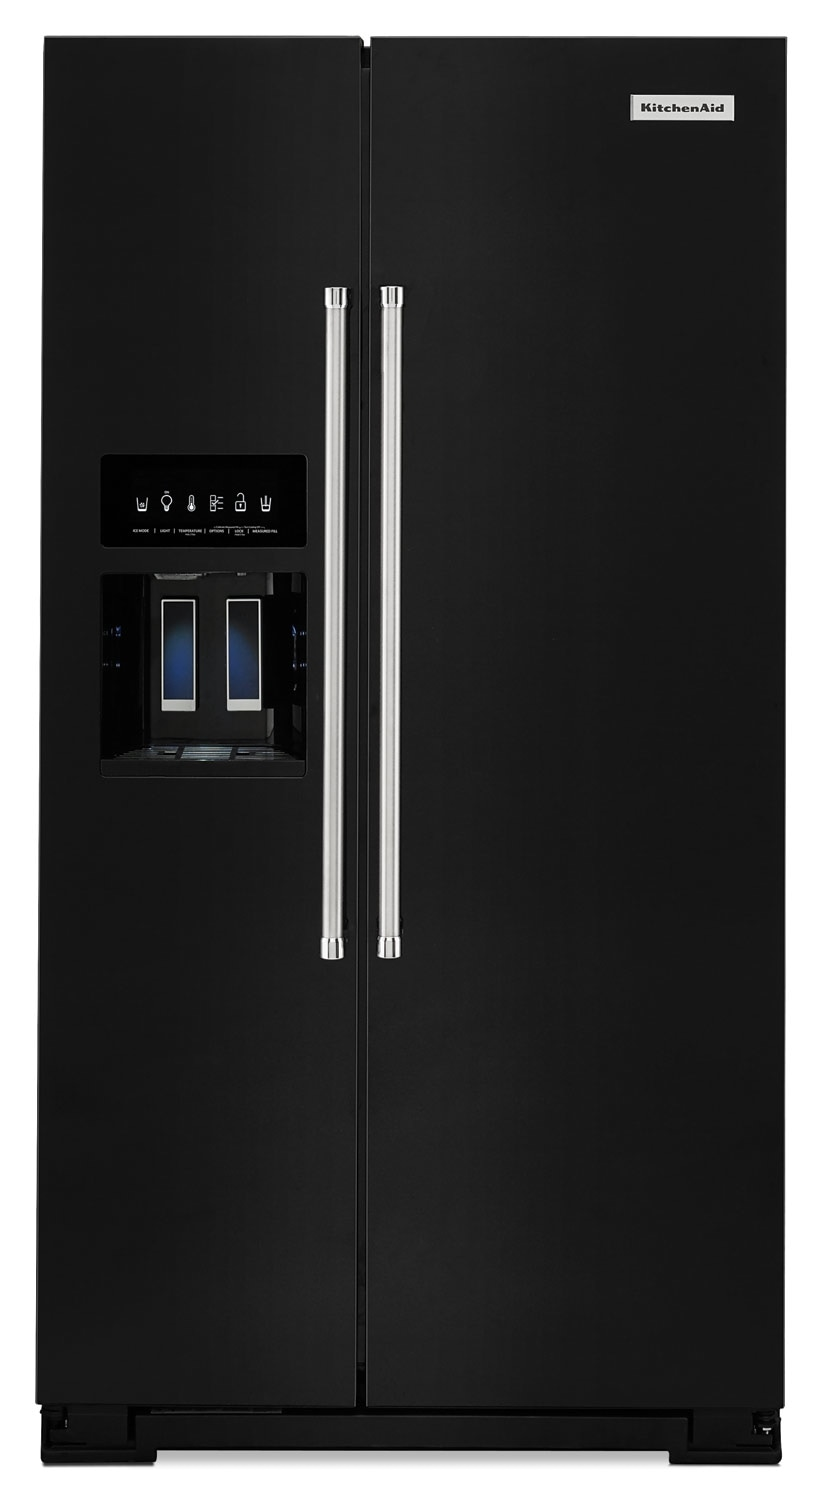 Refrigerators and Freezers - KitchenAid 24.8 Cu. Ft. Standard Depth Side-by-Side Refrigerator – Black